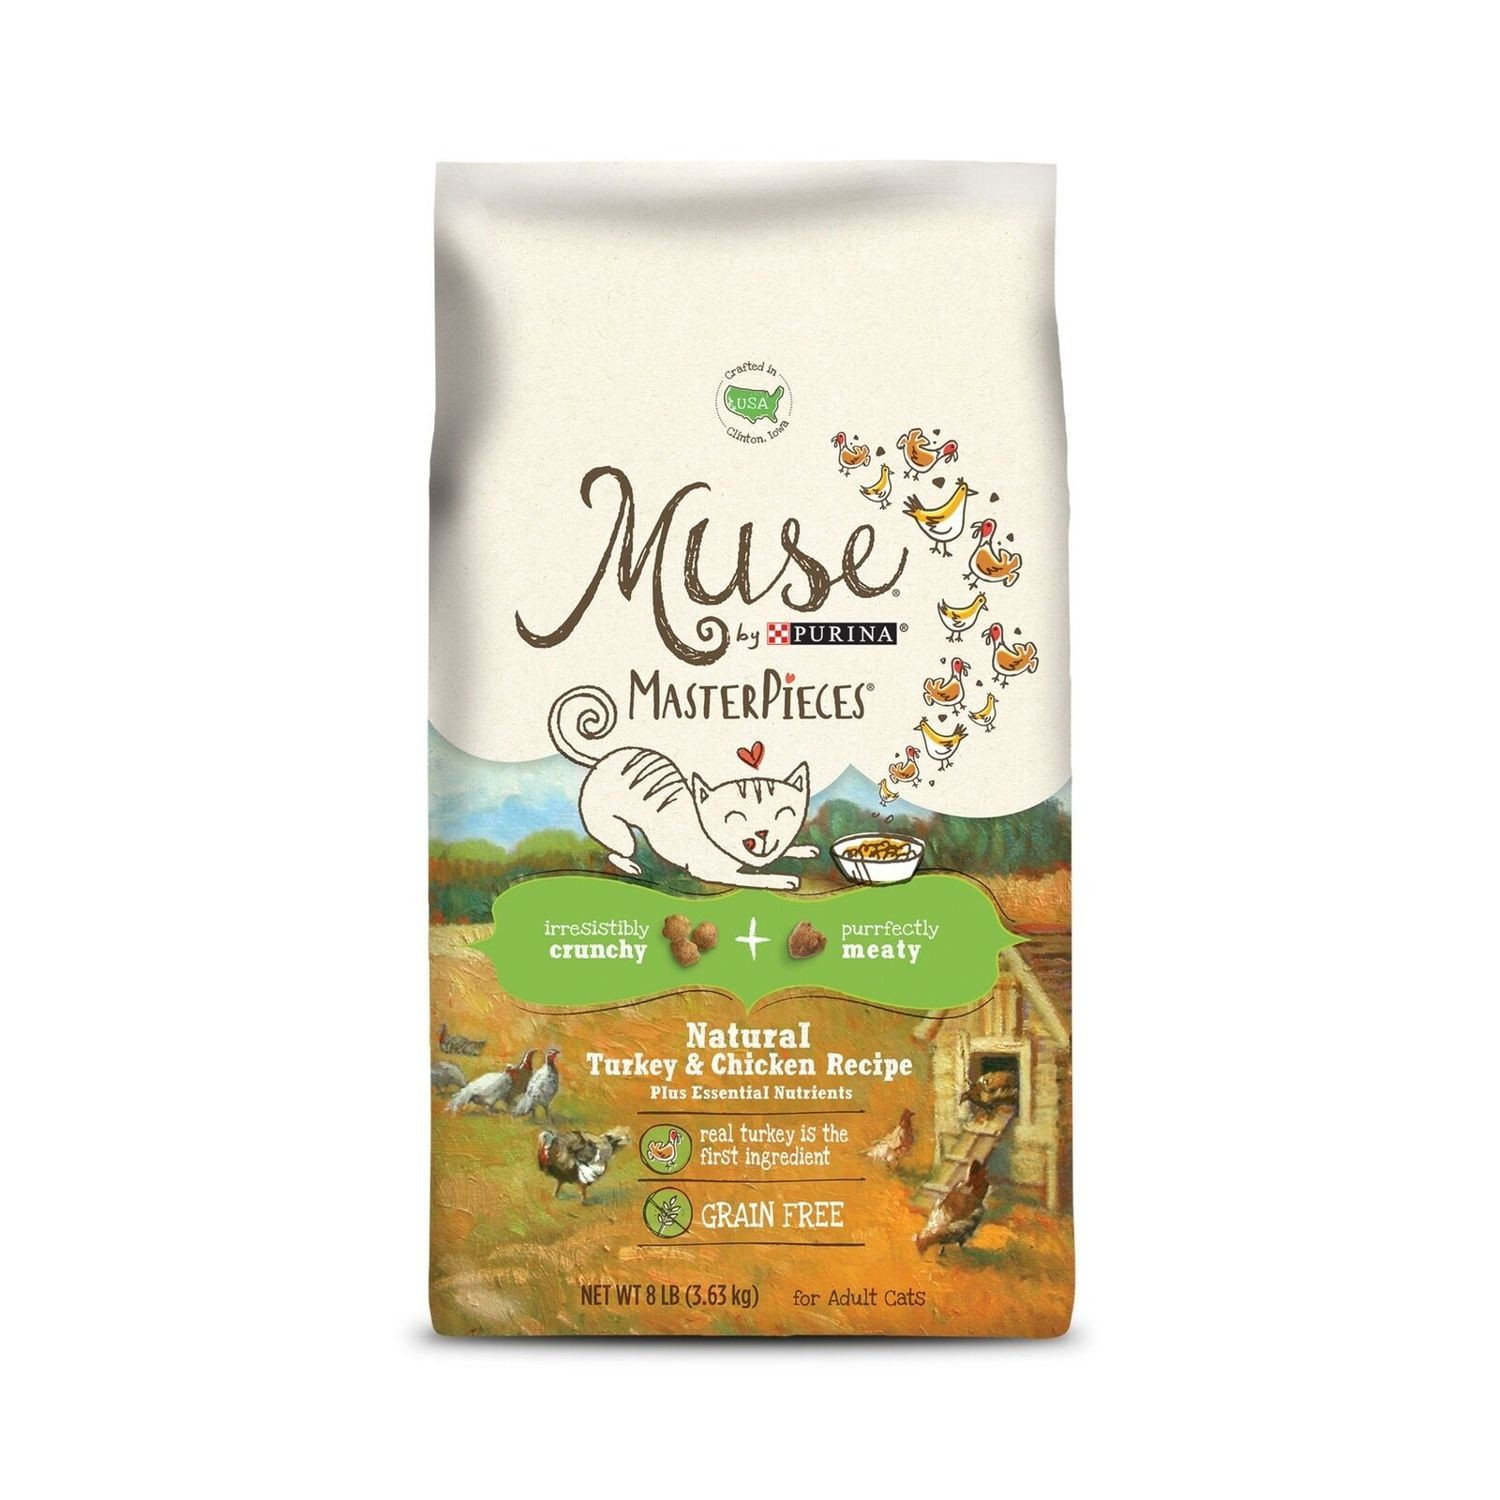 Muse Natural Grain Free Adult Dry Cat Food Dry Food With Meaty Masterpieces w/Turkey & Chicken 8 lbs. (9/20)